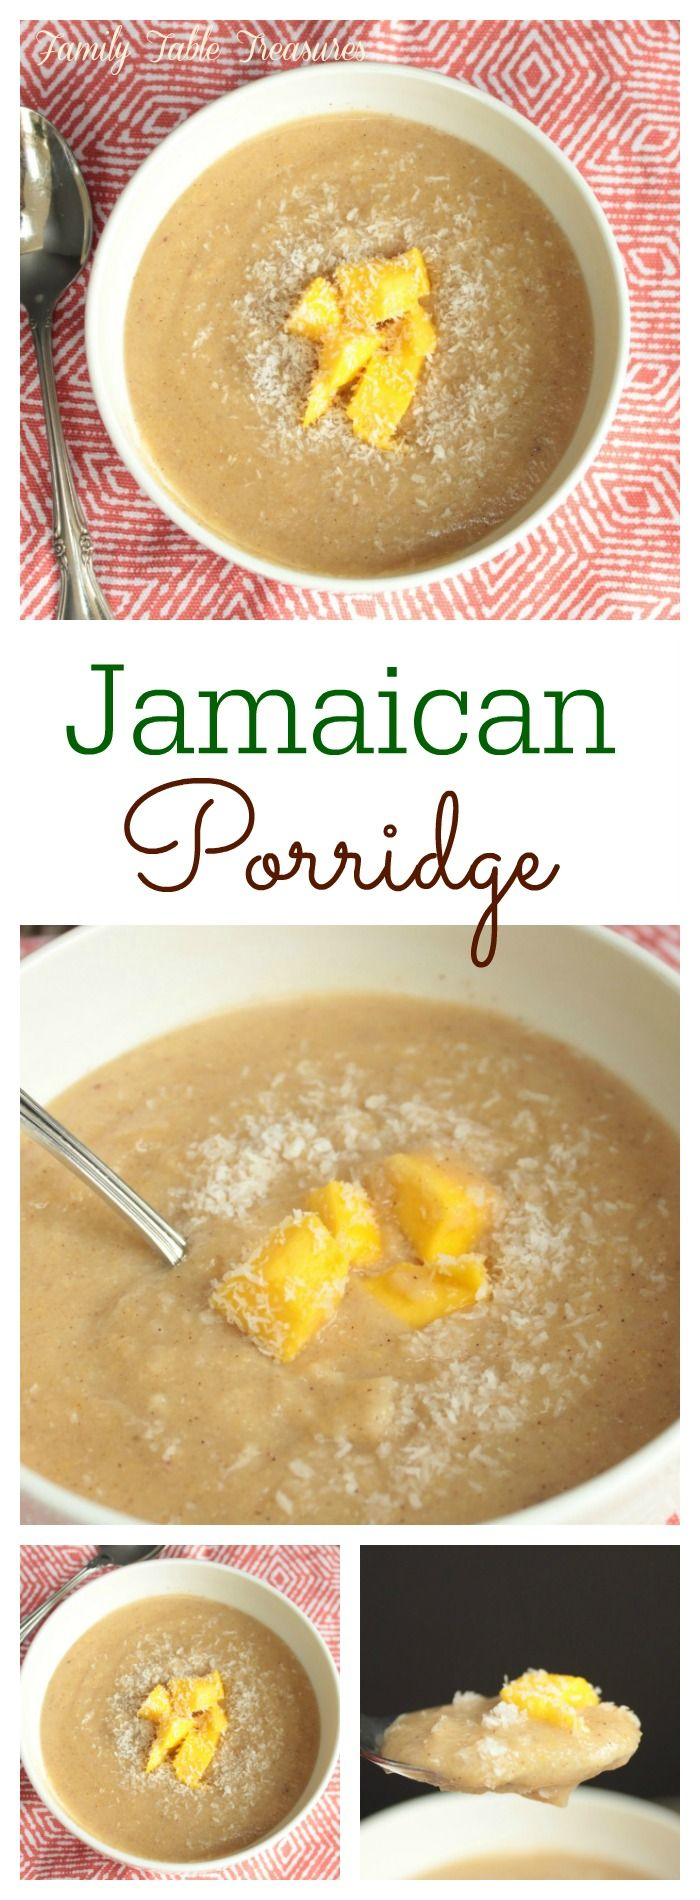 739 best jamaican foods images on pinterest cooking food jamaican jamaican porridge jamaican soupjamaican food recipesjamaican forumfinder Gallery